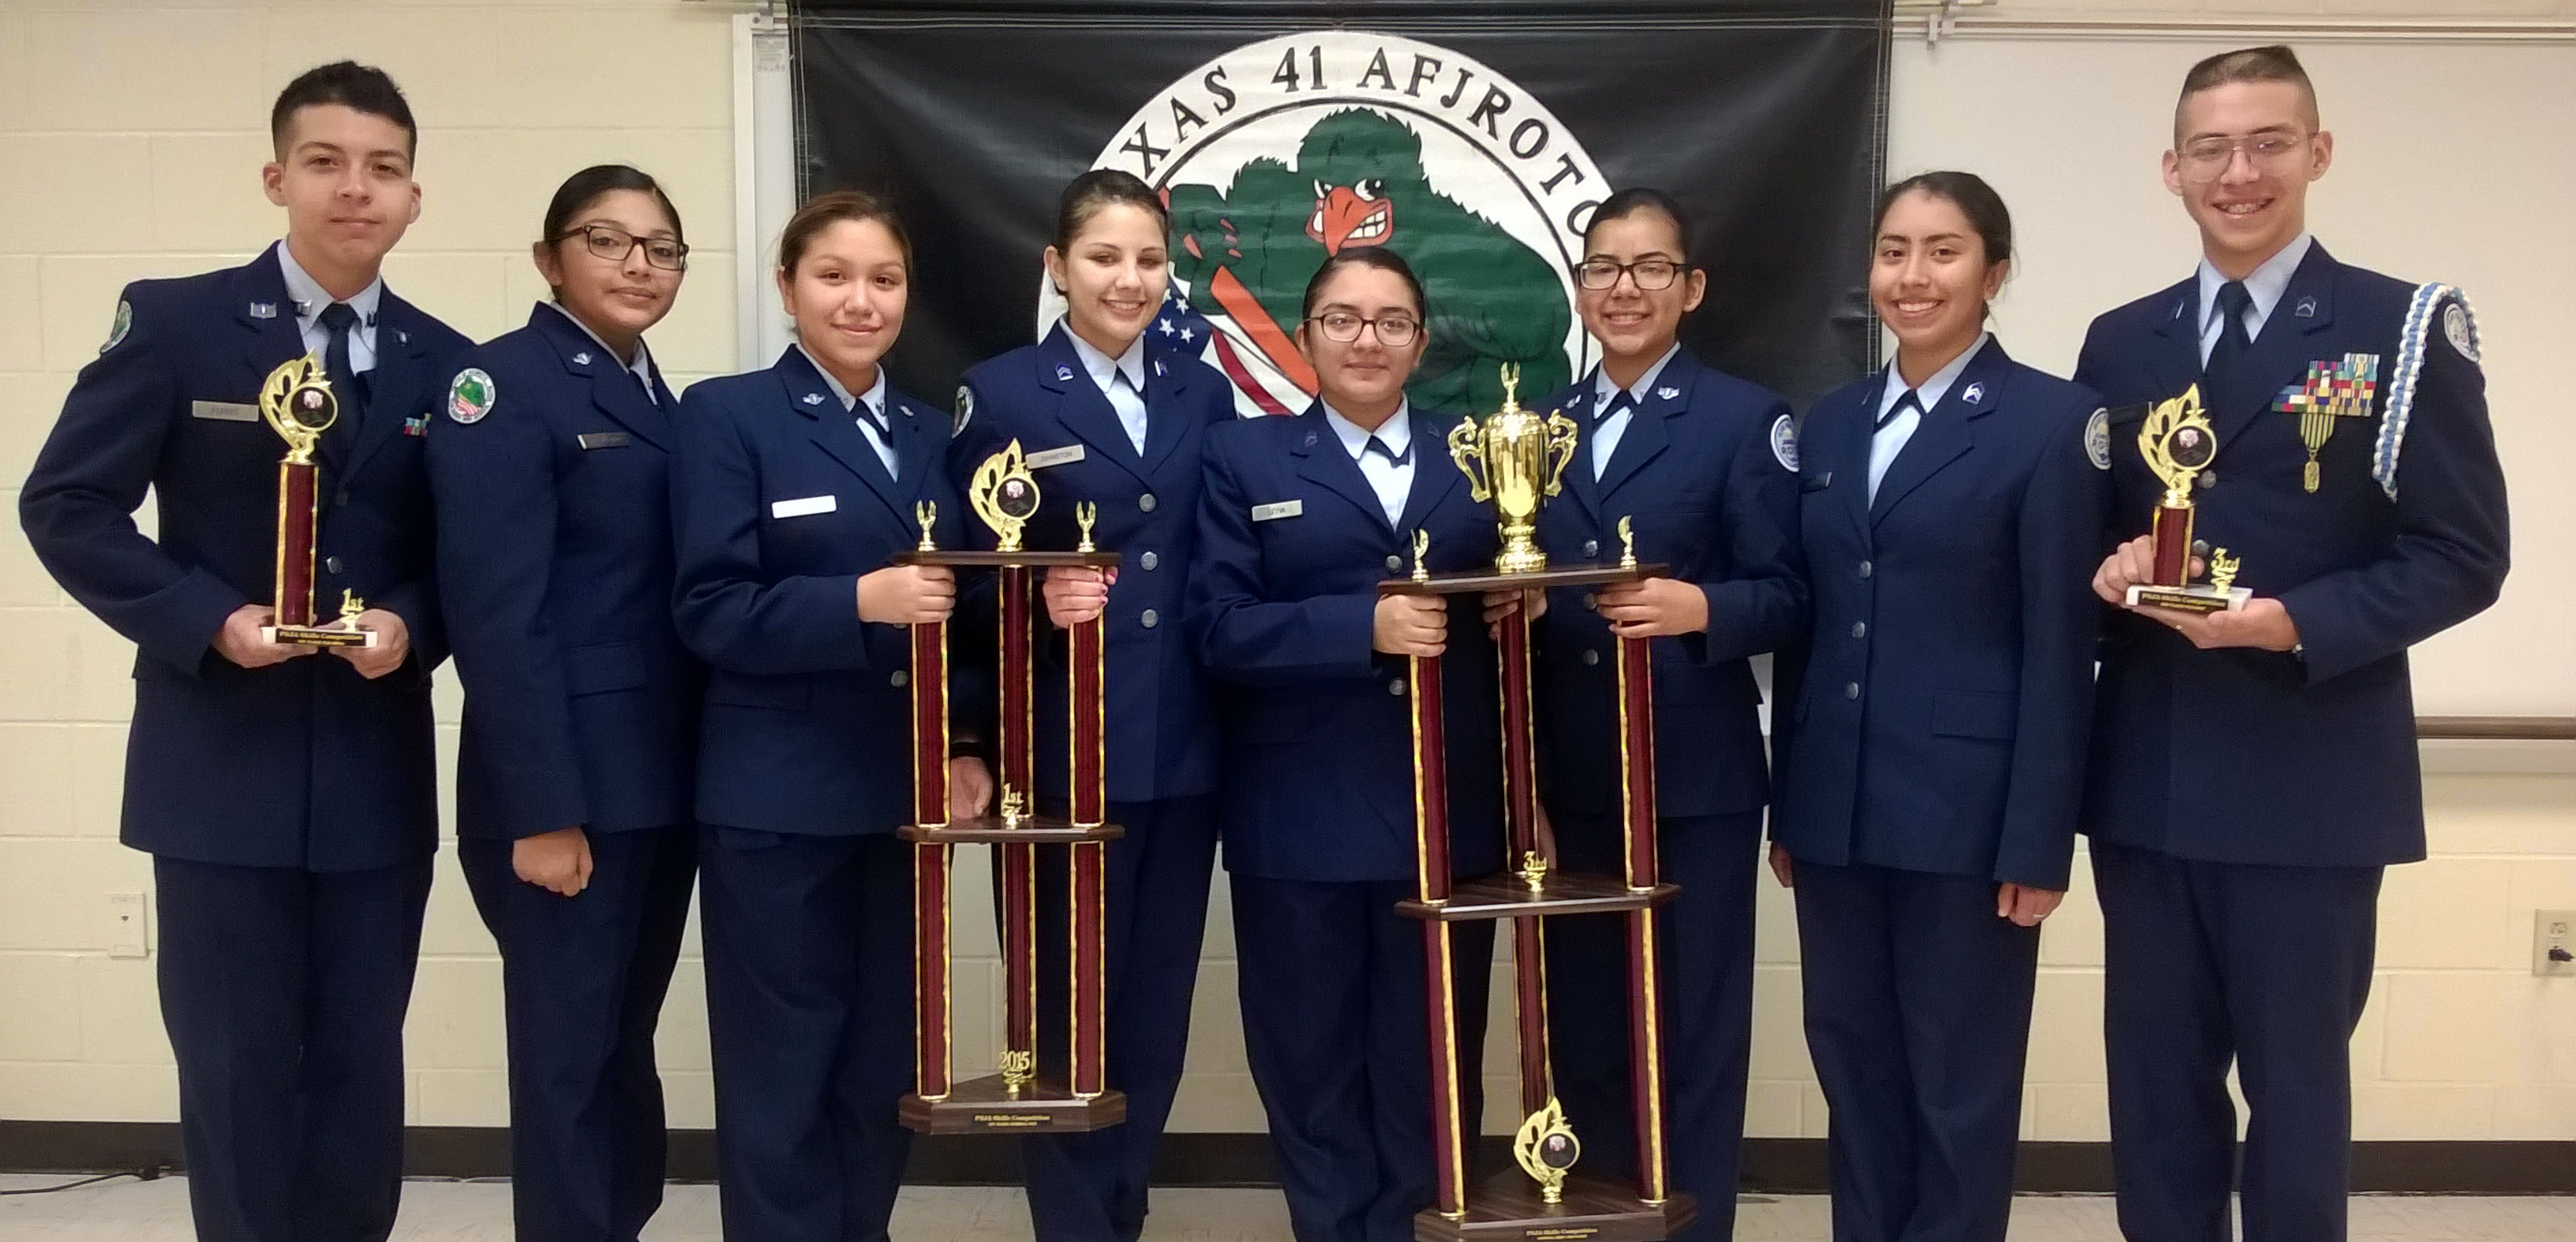 South's color guard team takes top spot at RGV JROTC meet